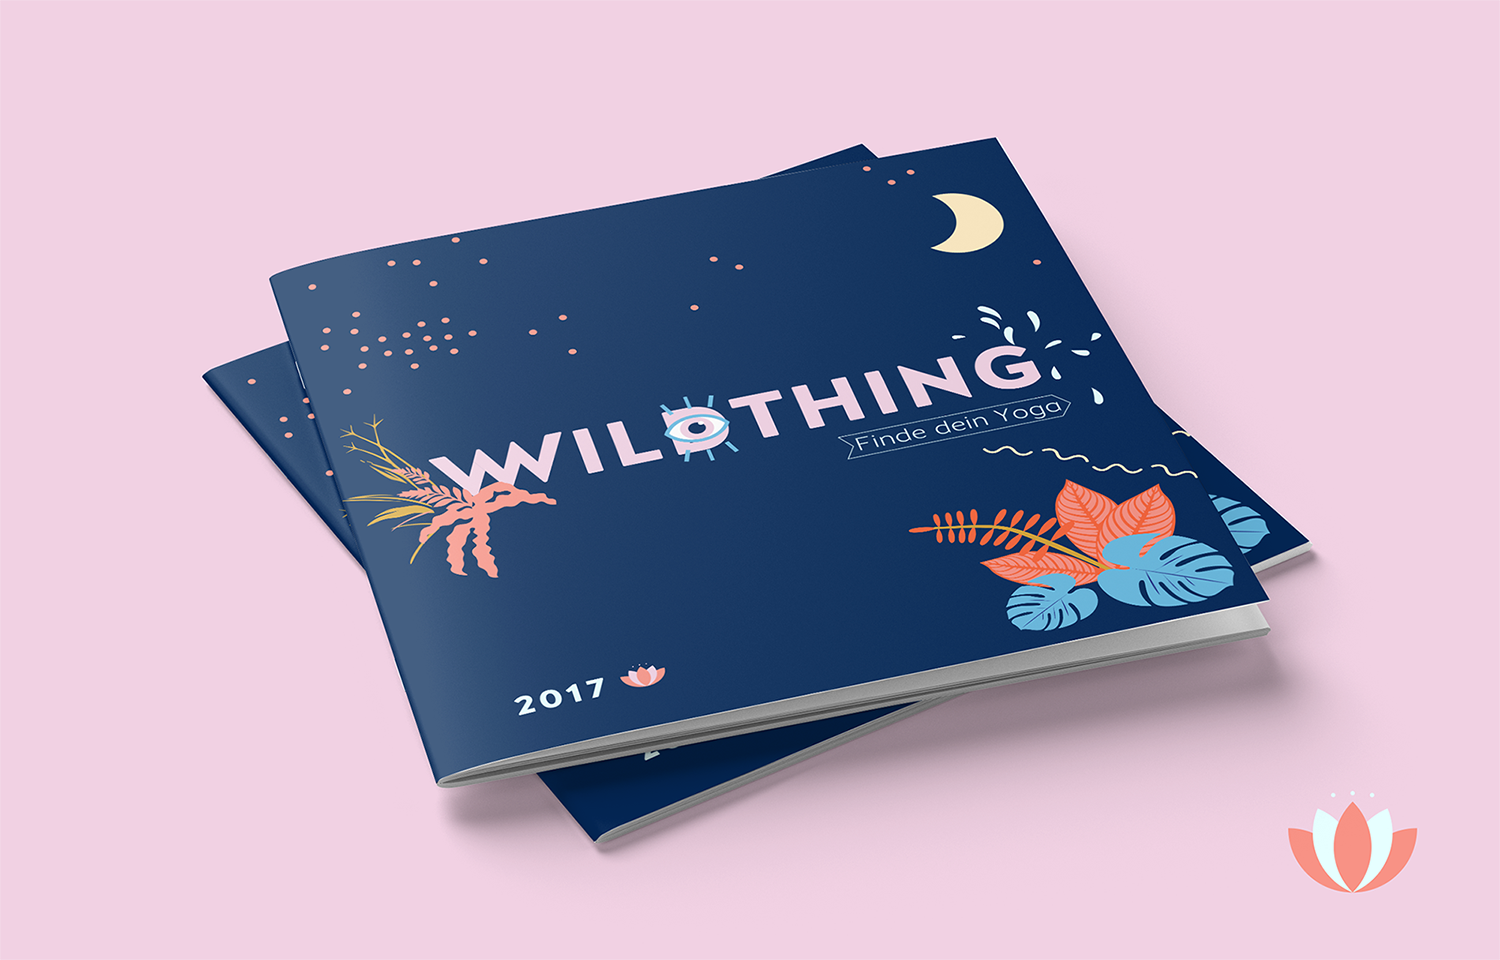 WILDTHING - Find your yoga by anna habaschy - Creative Work